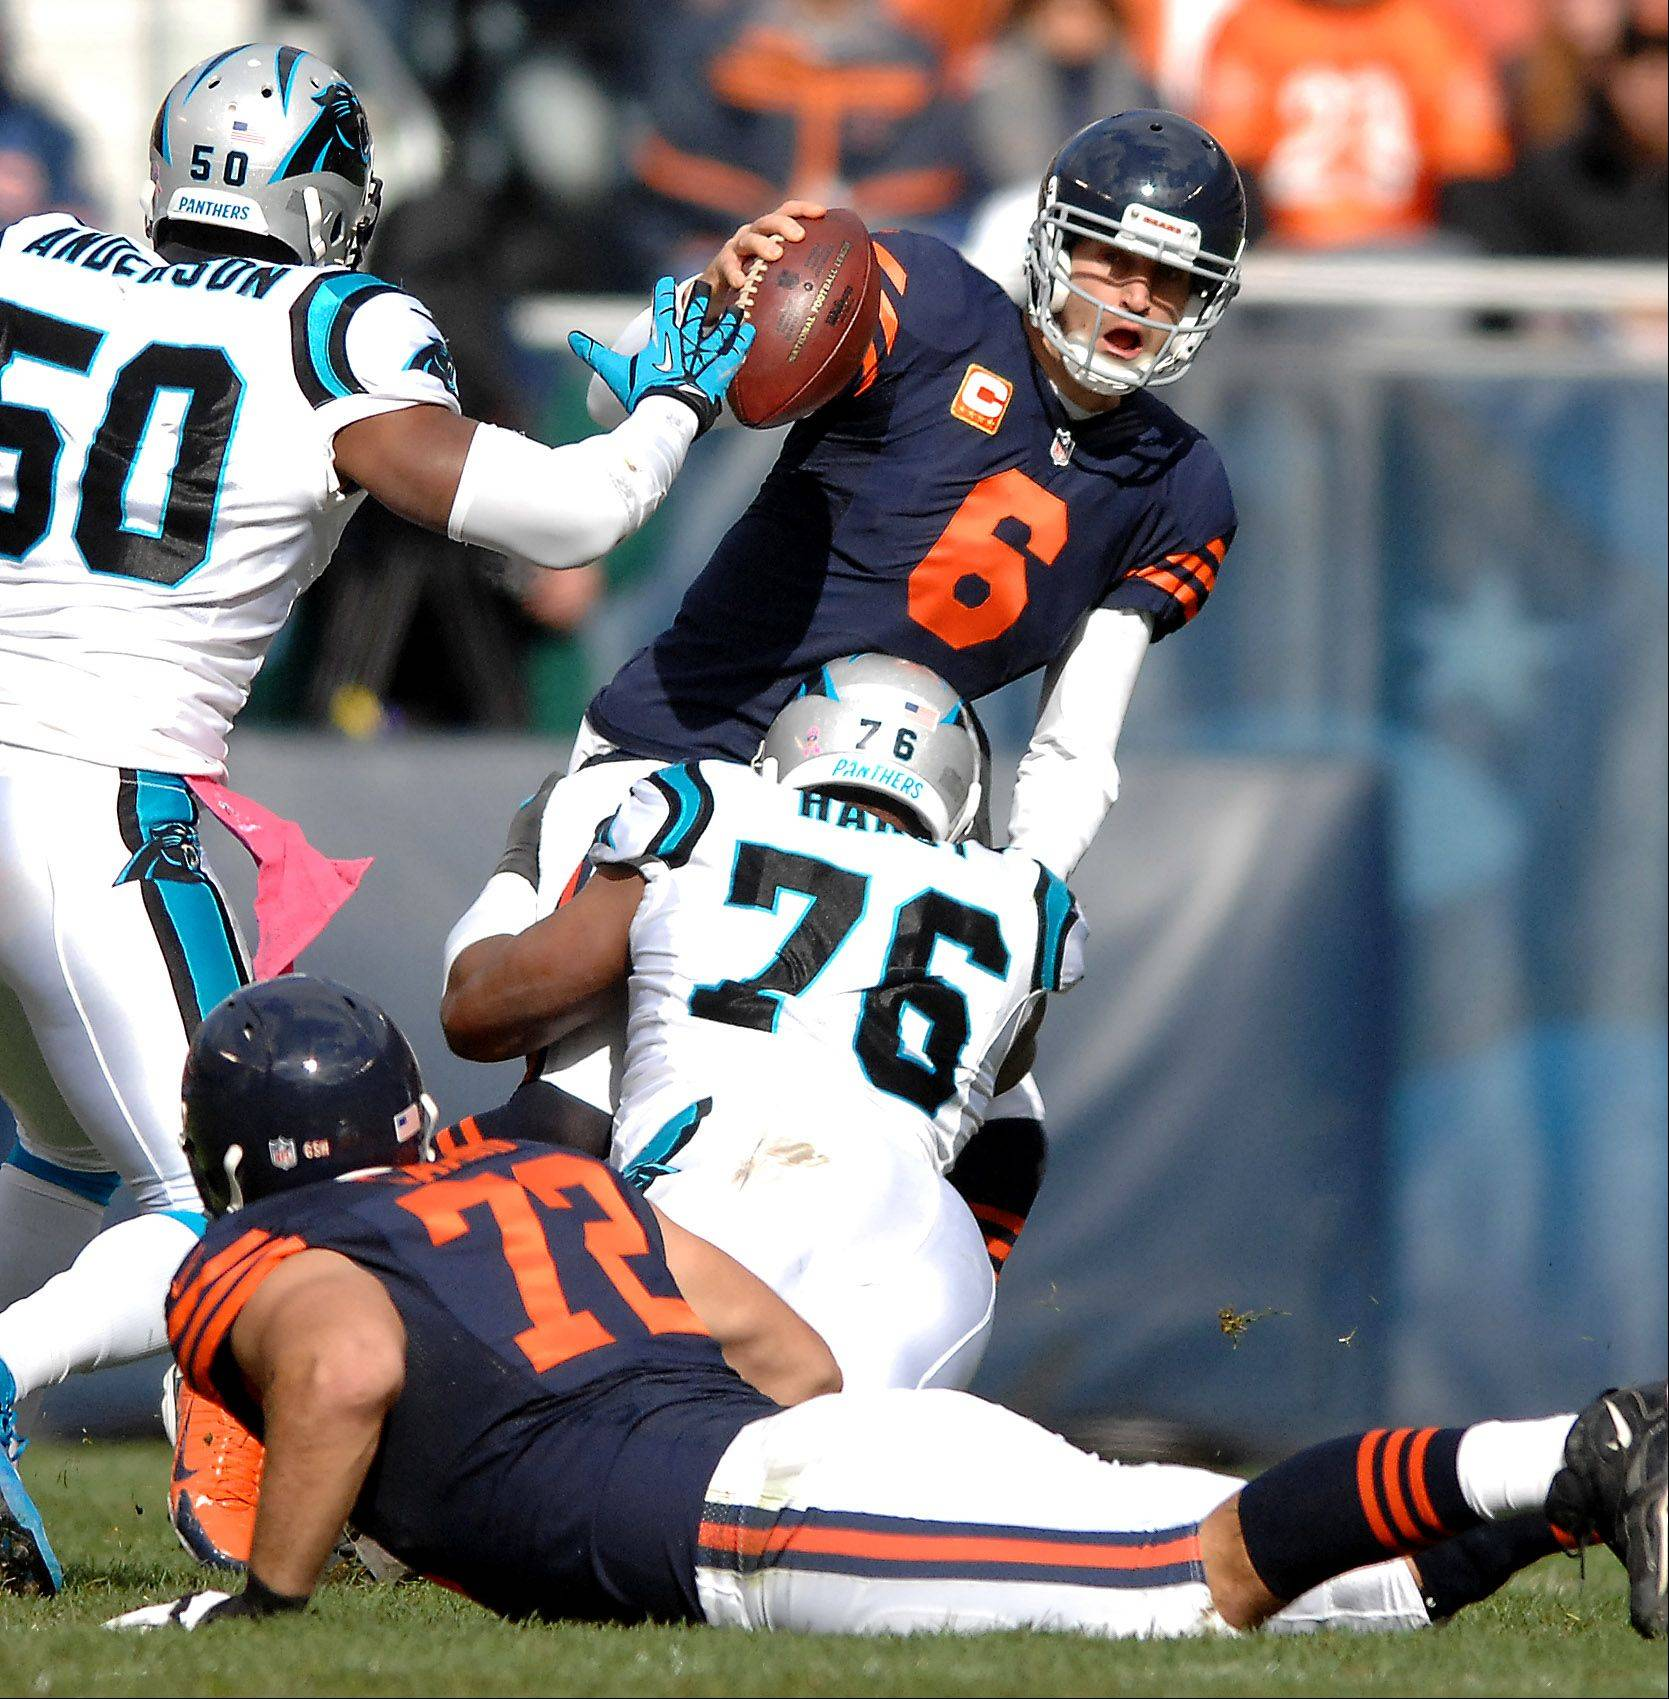 Bears quarterback Jay Cutler (6) is sacked by Carolina Panthers defensive end Greg Hardy (76) during Sunday's game at Soldier Field in Chicago.